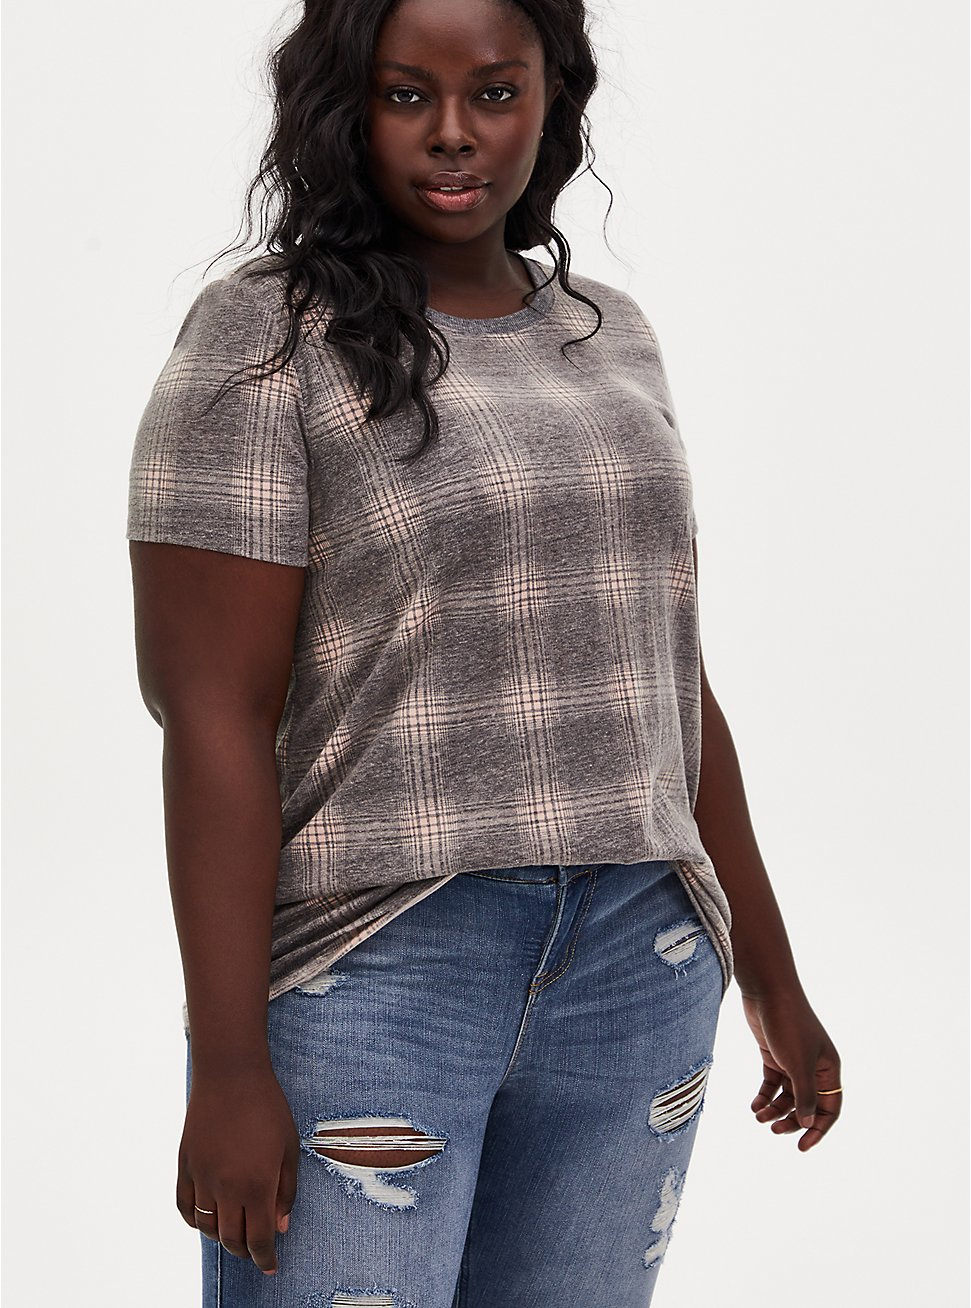 Classic Fit Tee - Vintage Burnout Plaid Black & Peach, PEACH BEIGE, hi-res